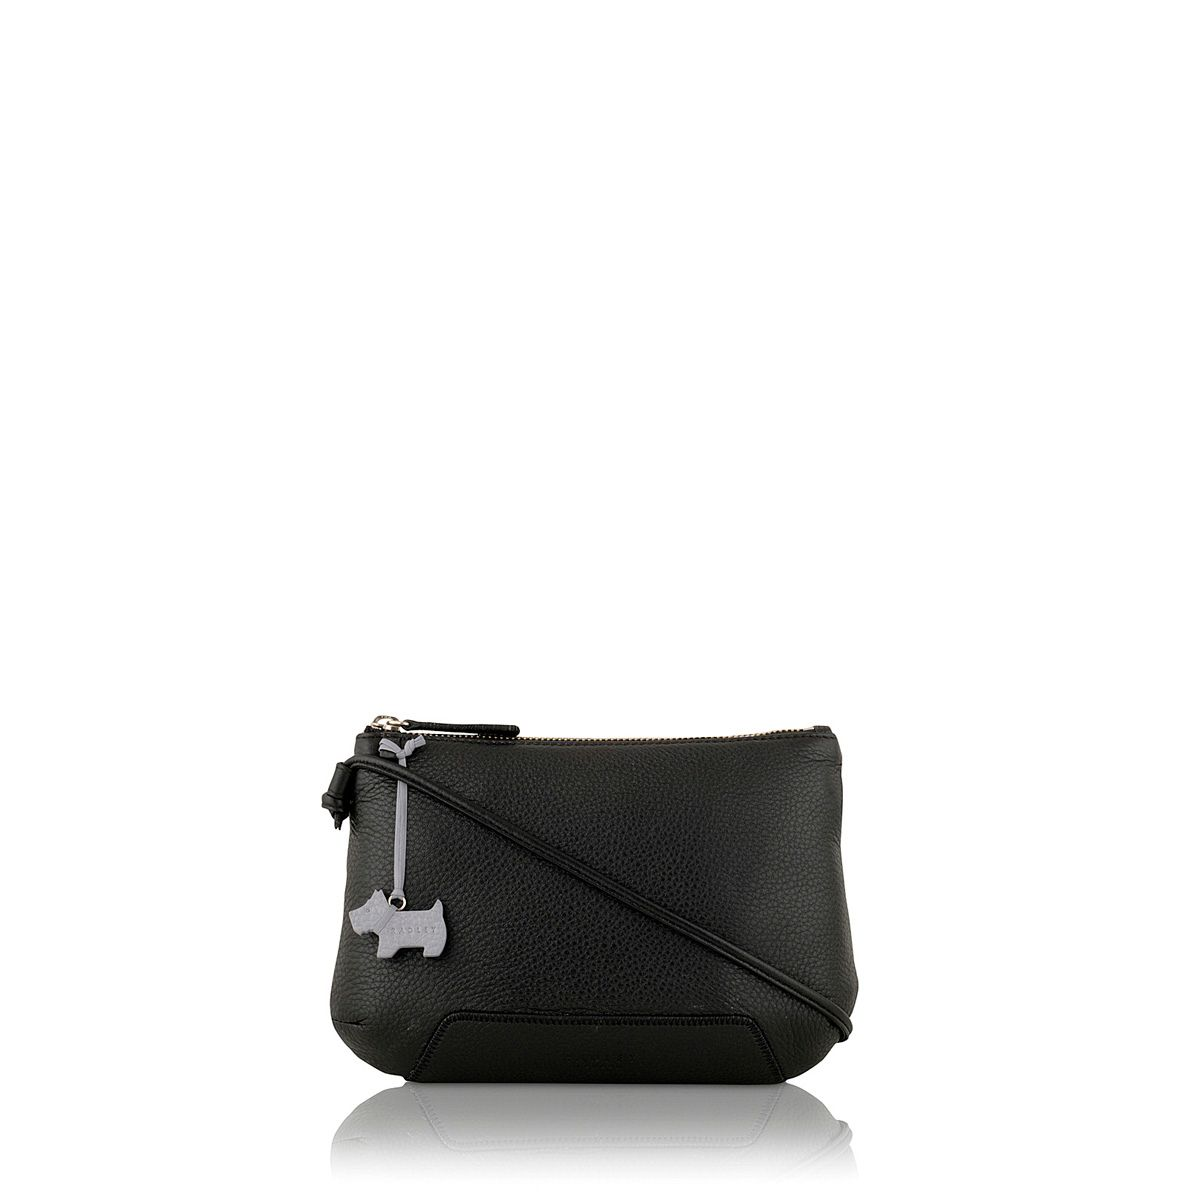 Dayton black small leather cross bady bag